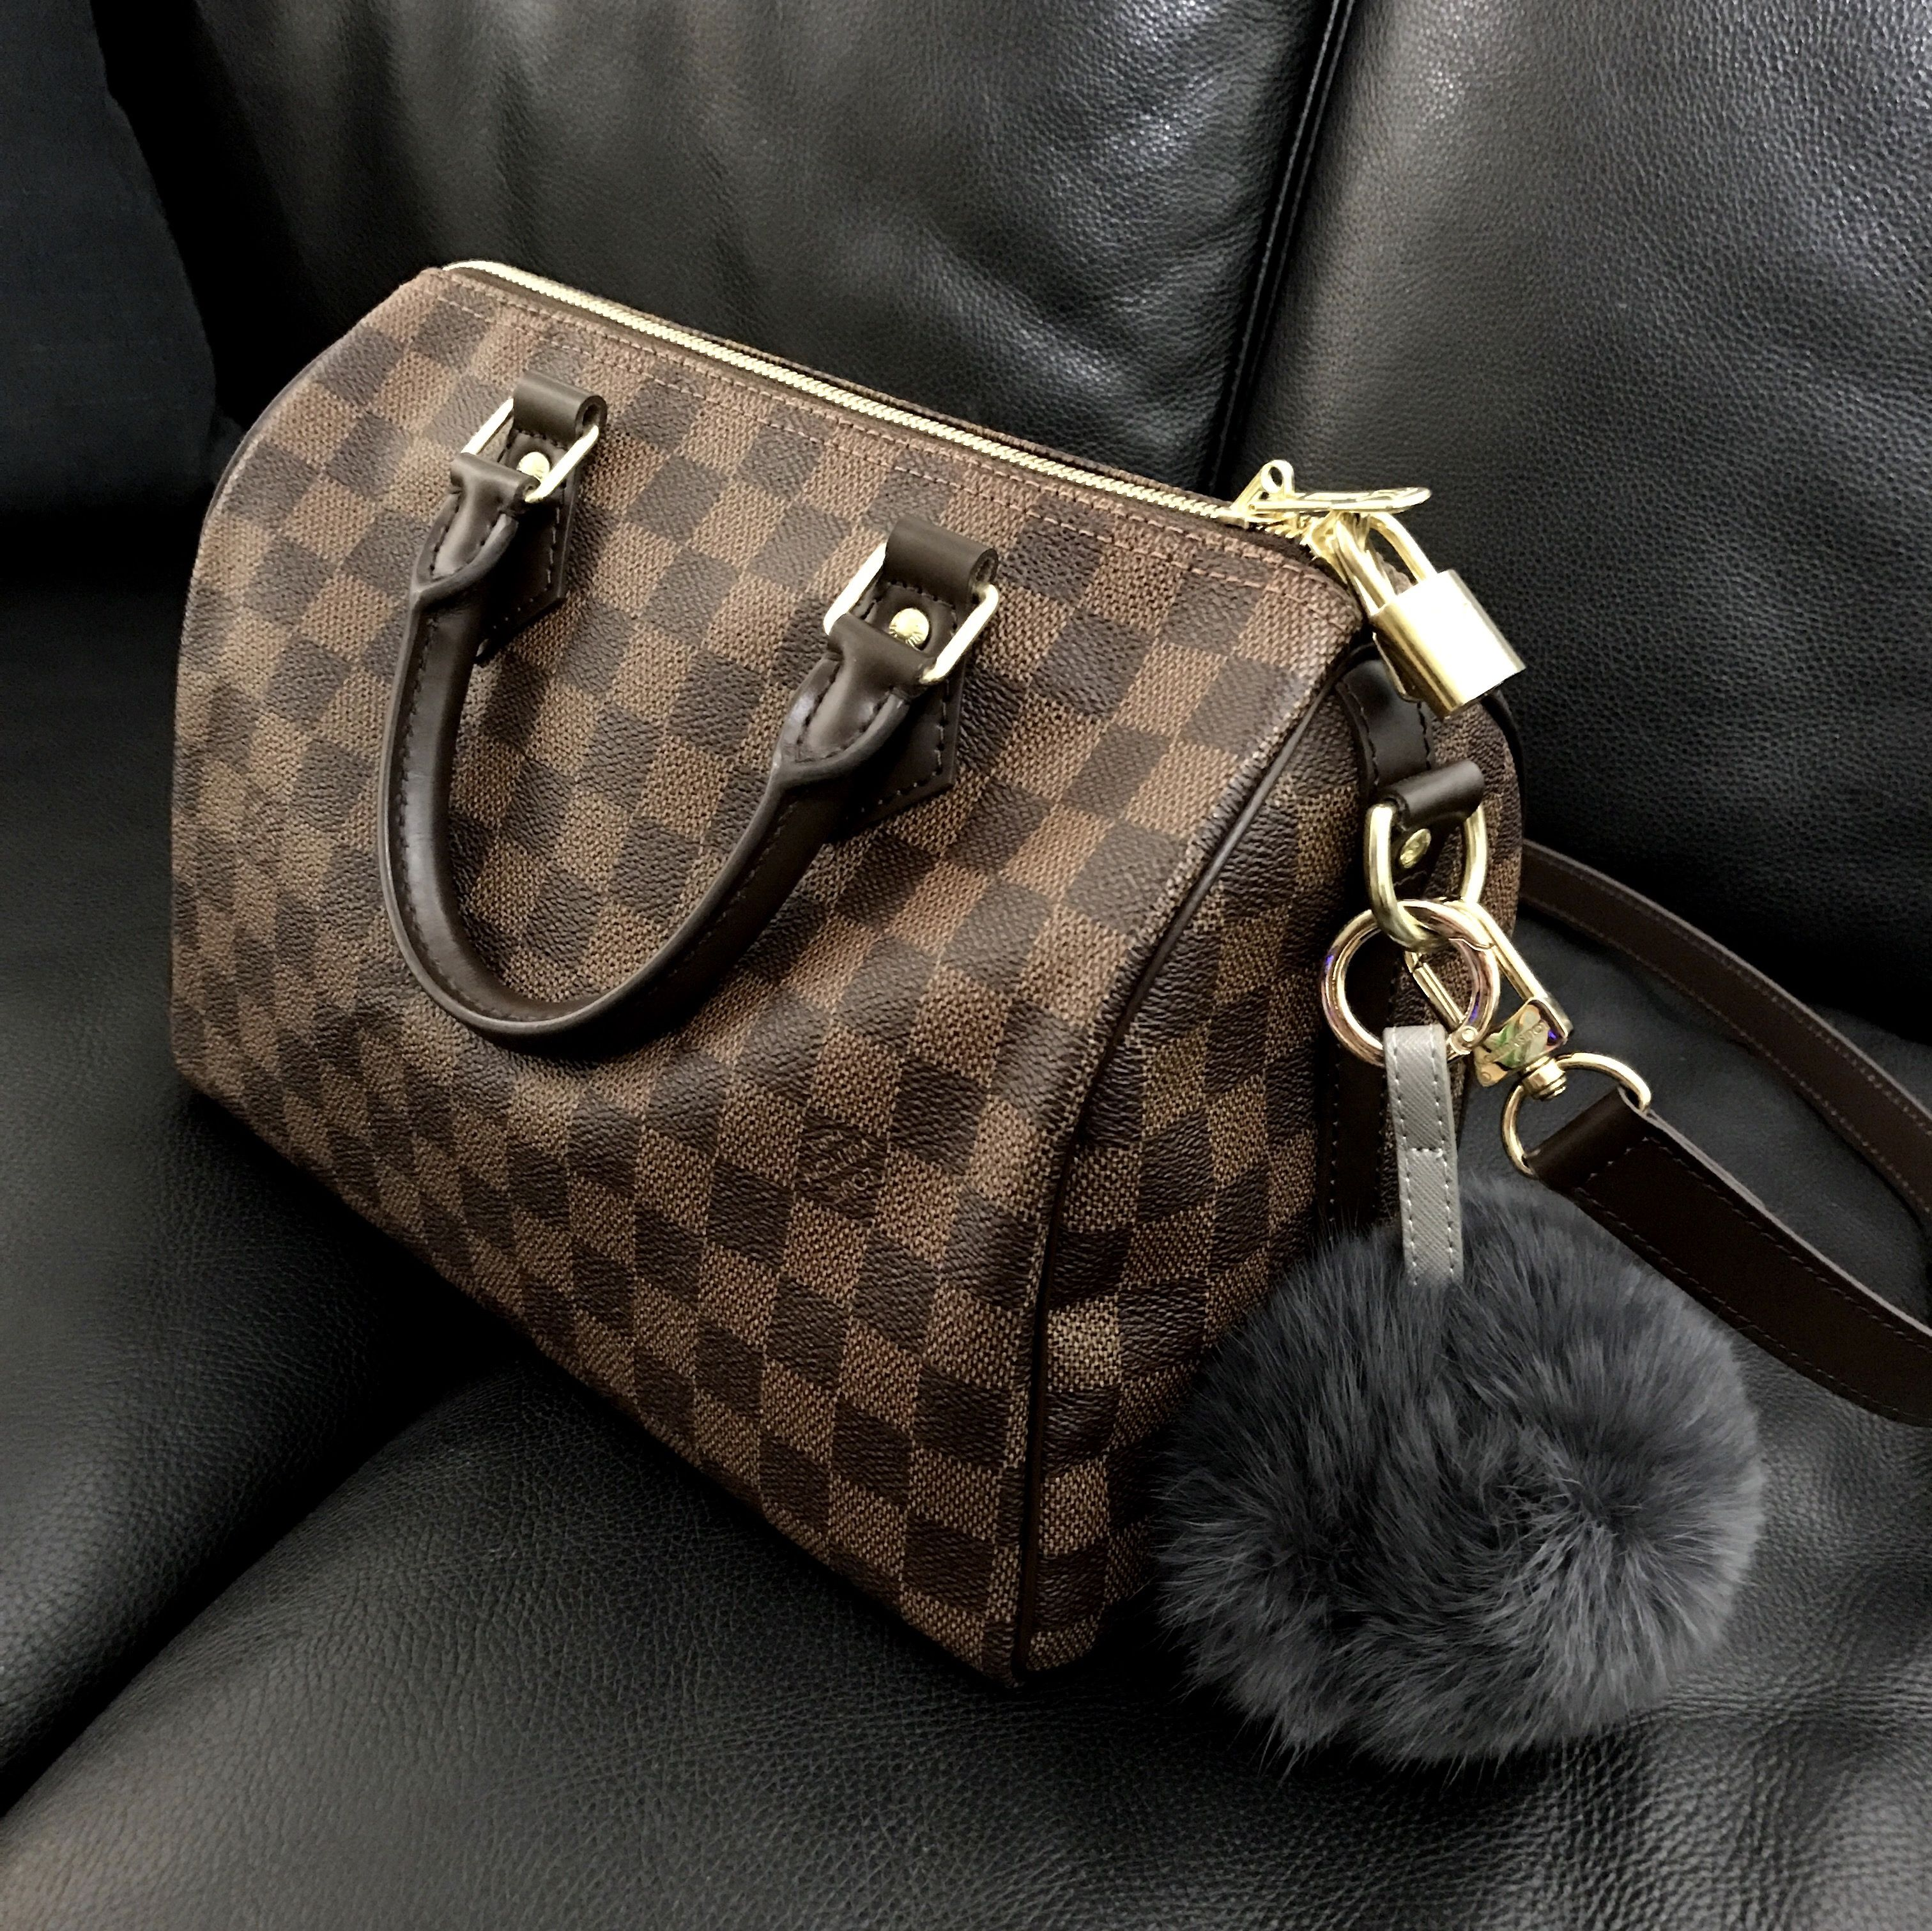 1ed9068e427f Louis Vuitton speedy b 25 in damier ebene